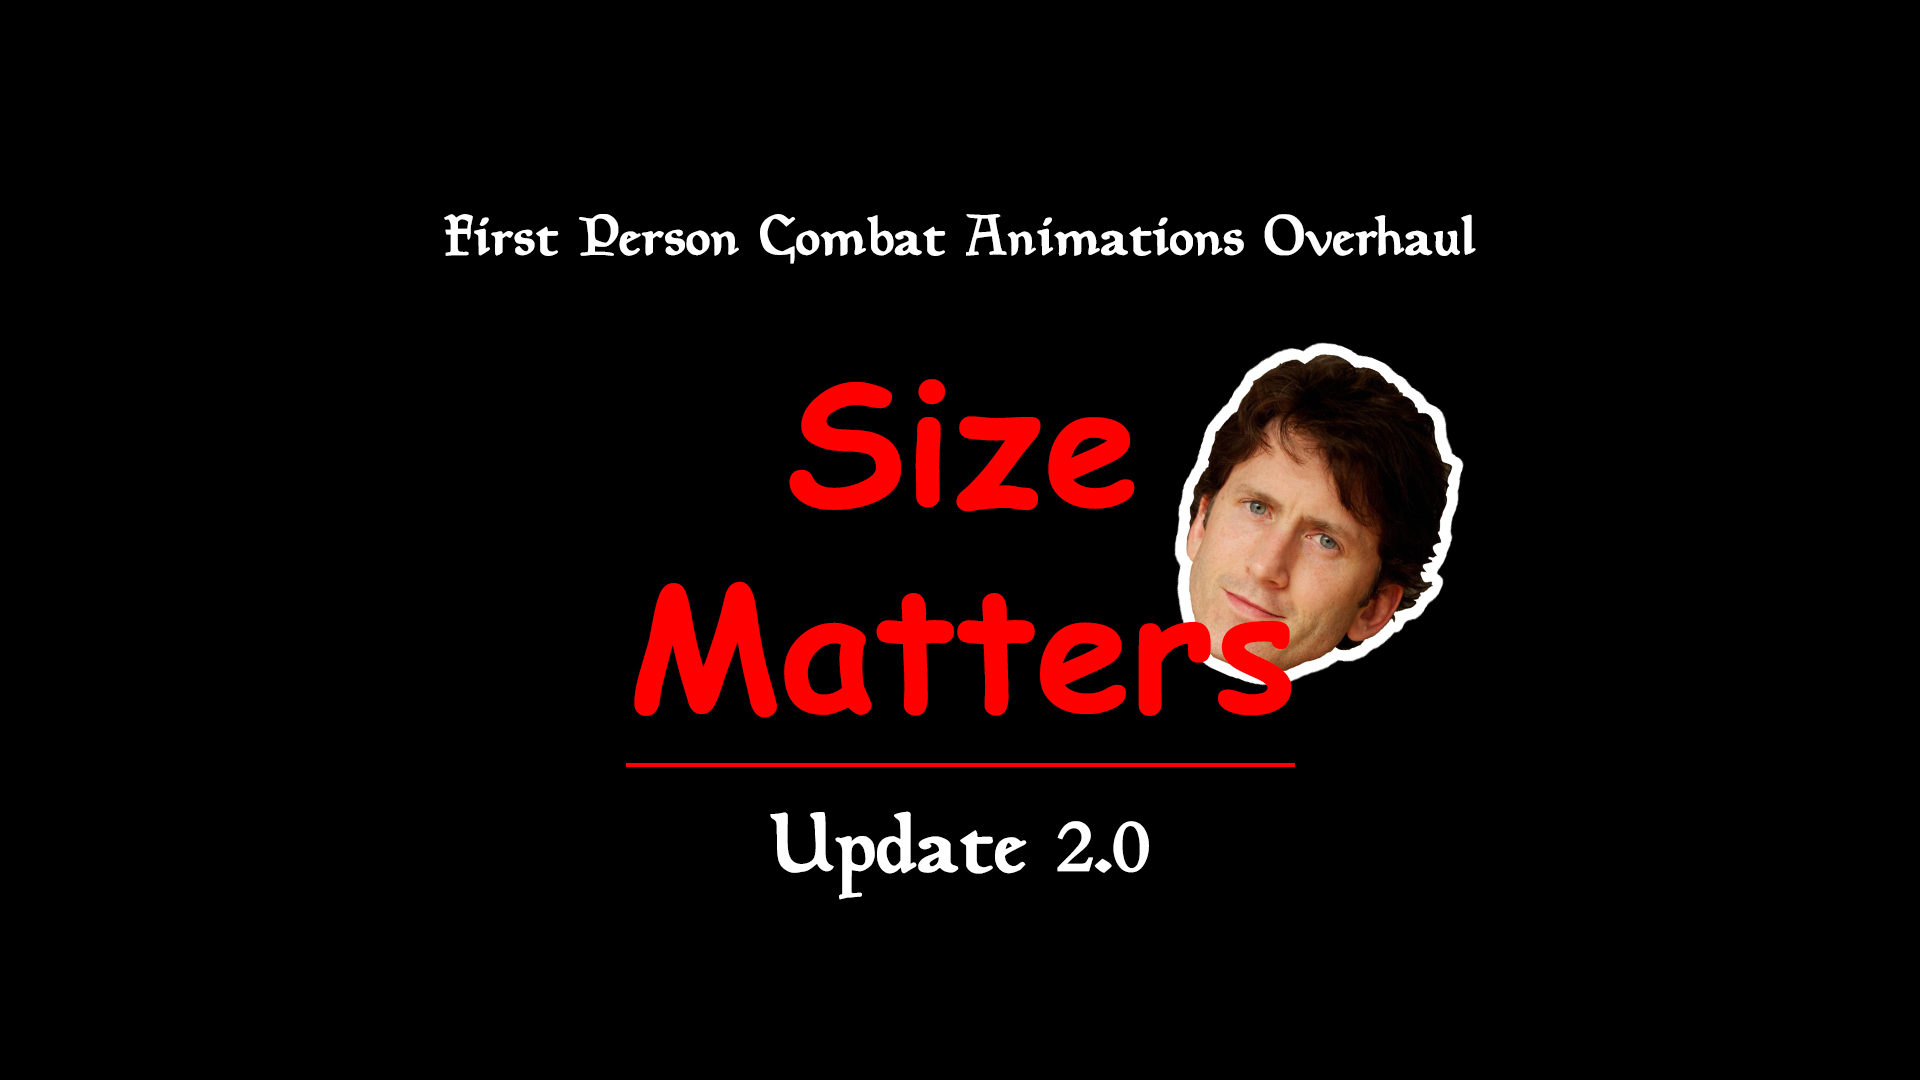 SIZE MATTERS - First Person Combat Anima